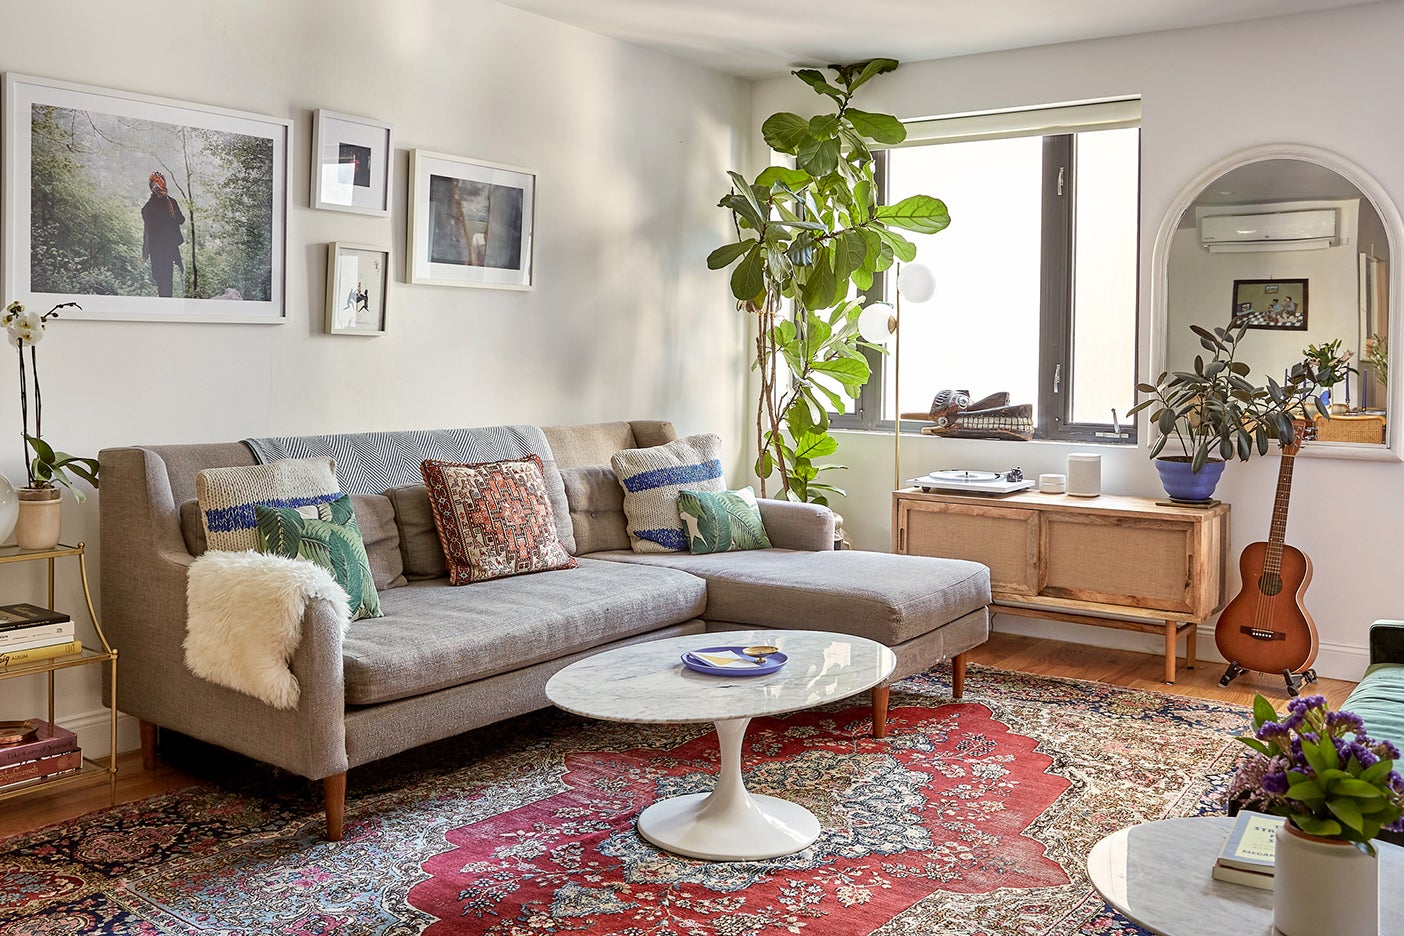 Small living room with a sectional sofa